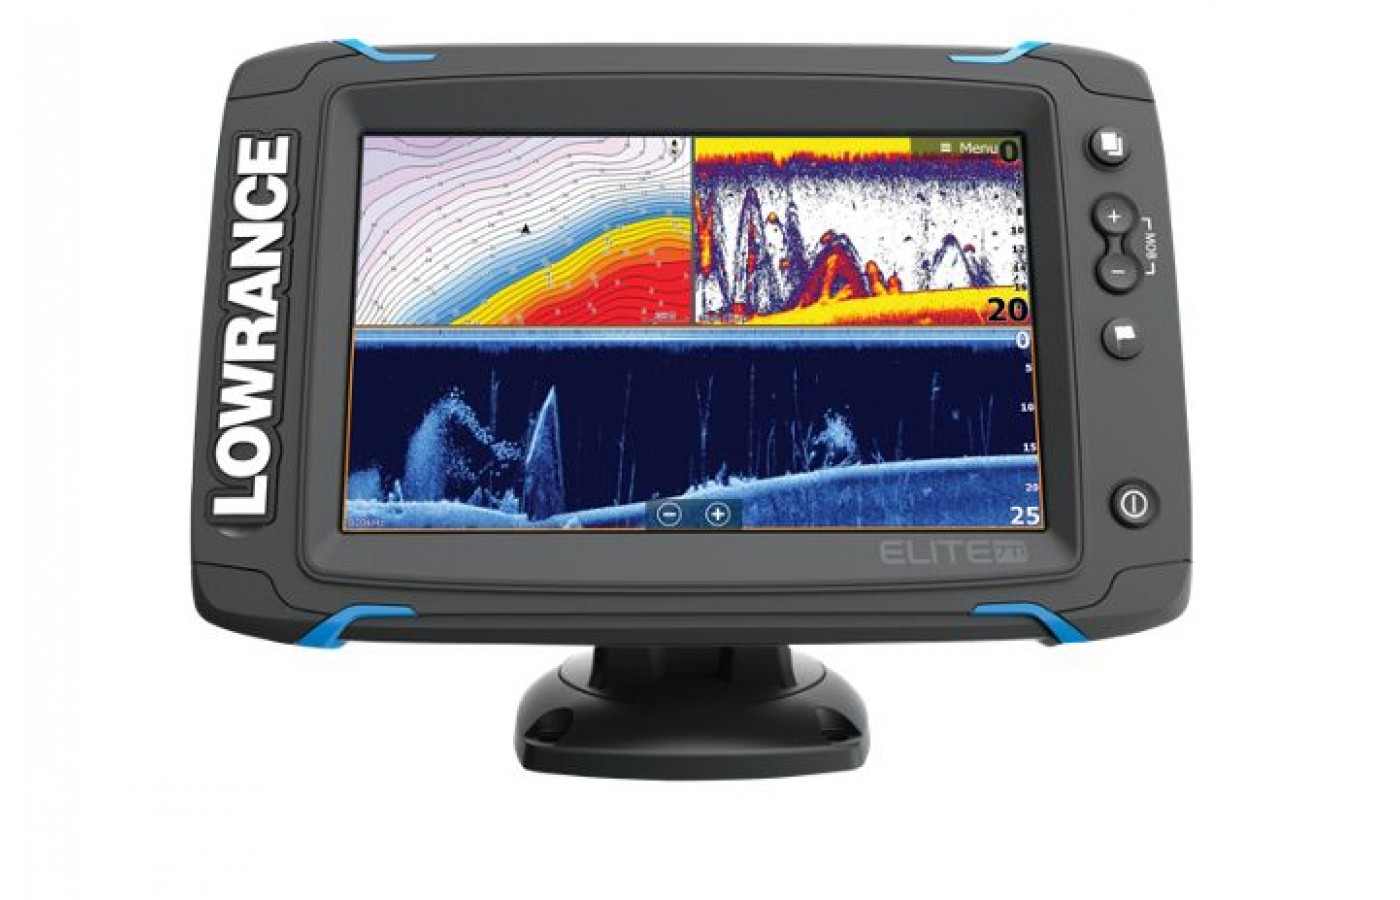 The Lowrance Elite 7 TI has a high resolution 7 inch screen.